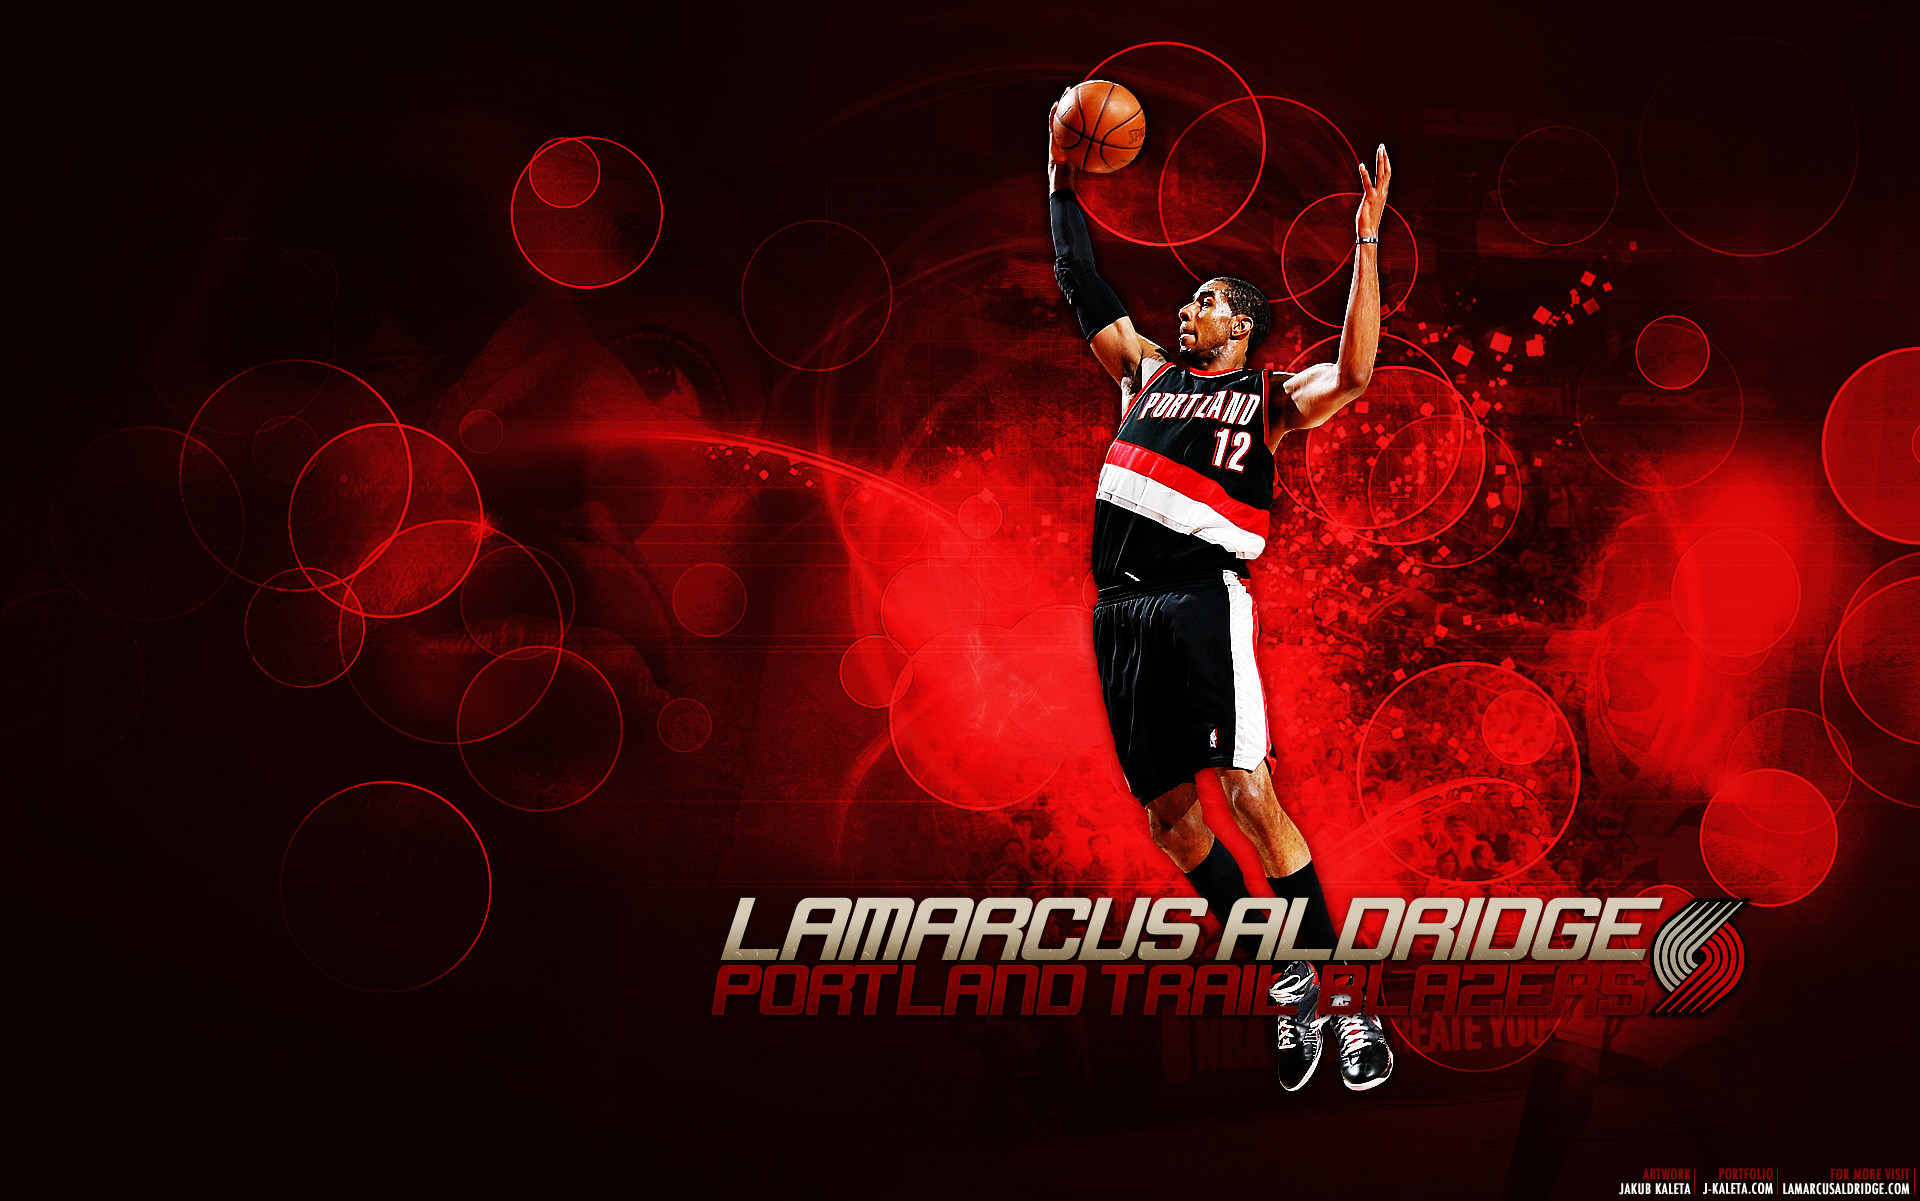 PORTLAND TRAIL BLAZERS nba basketball (39) wallpaper | | 211056 |  WallpaperUP